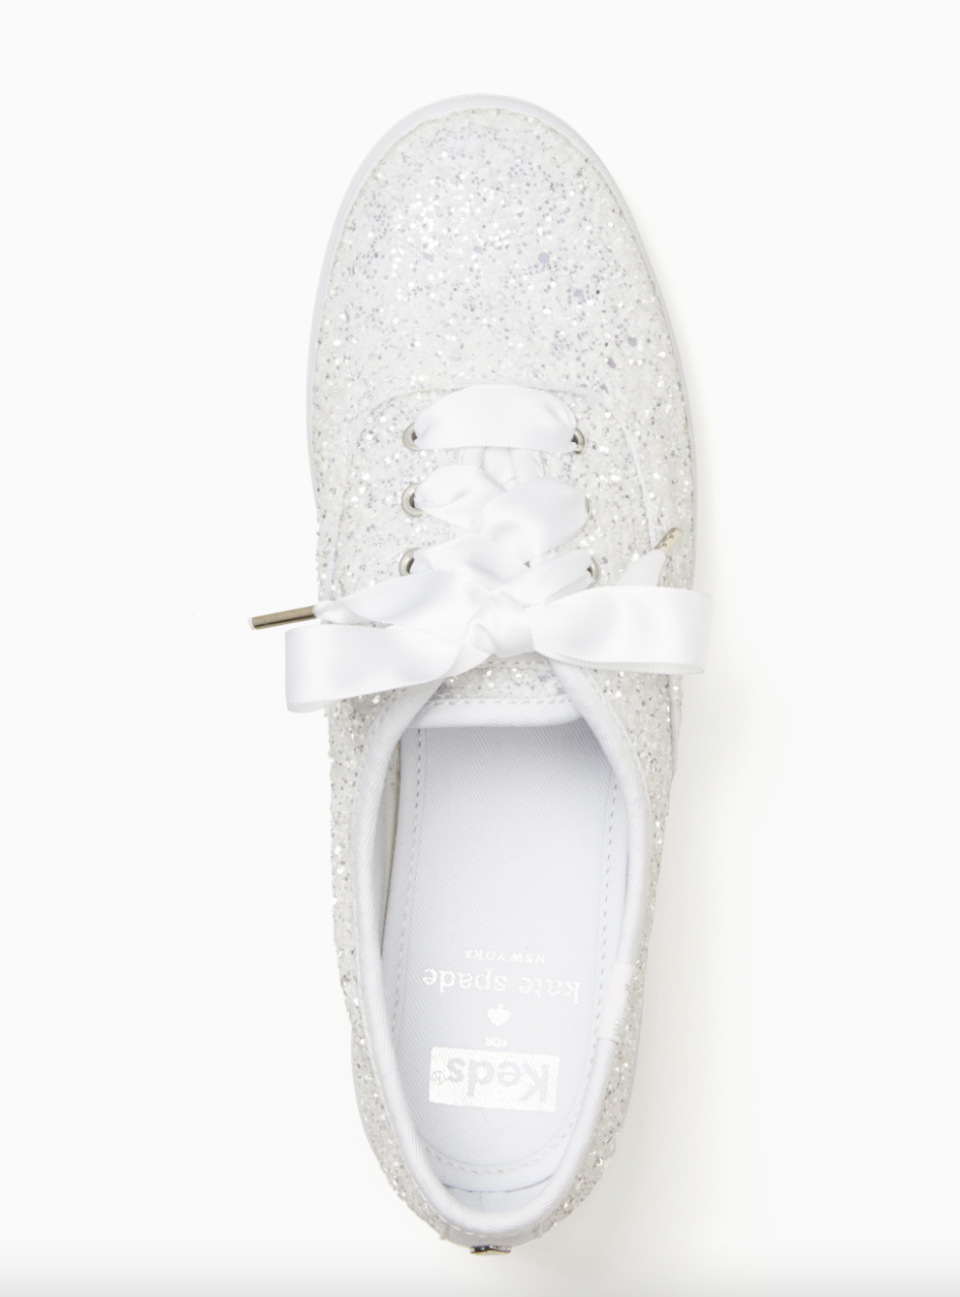 Keds x Kate Spade Glitter Sneakers (Photo via Kate Spade New York)